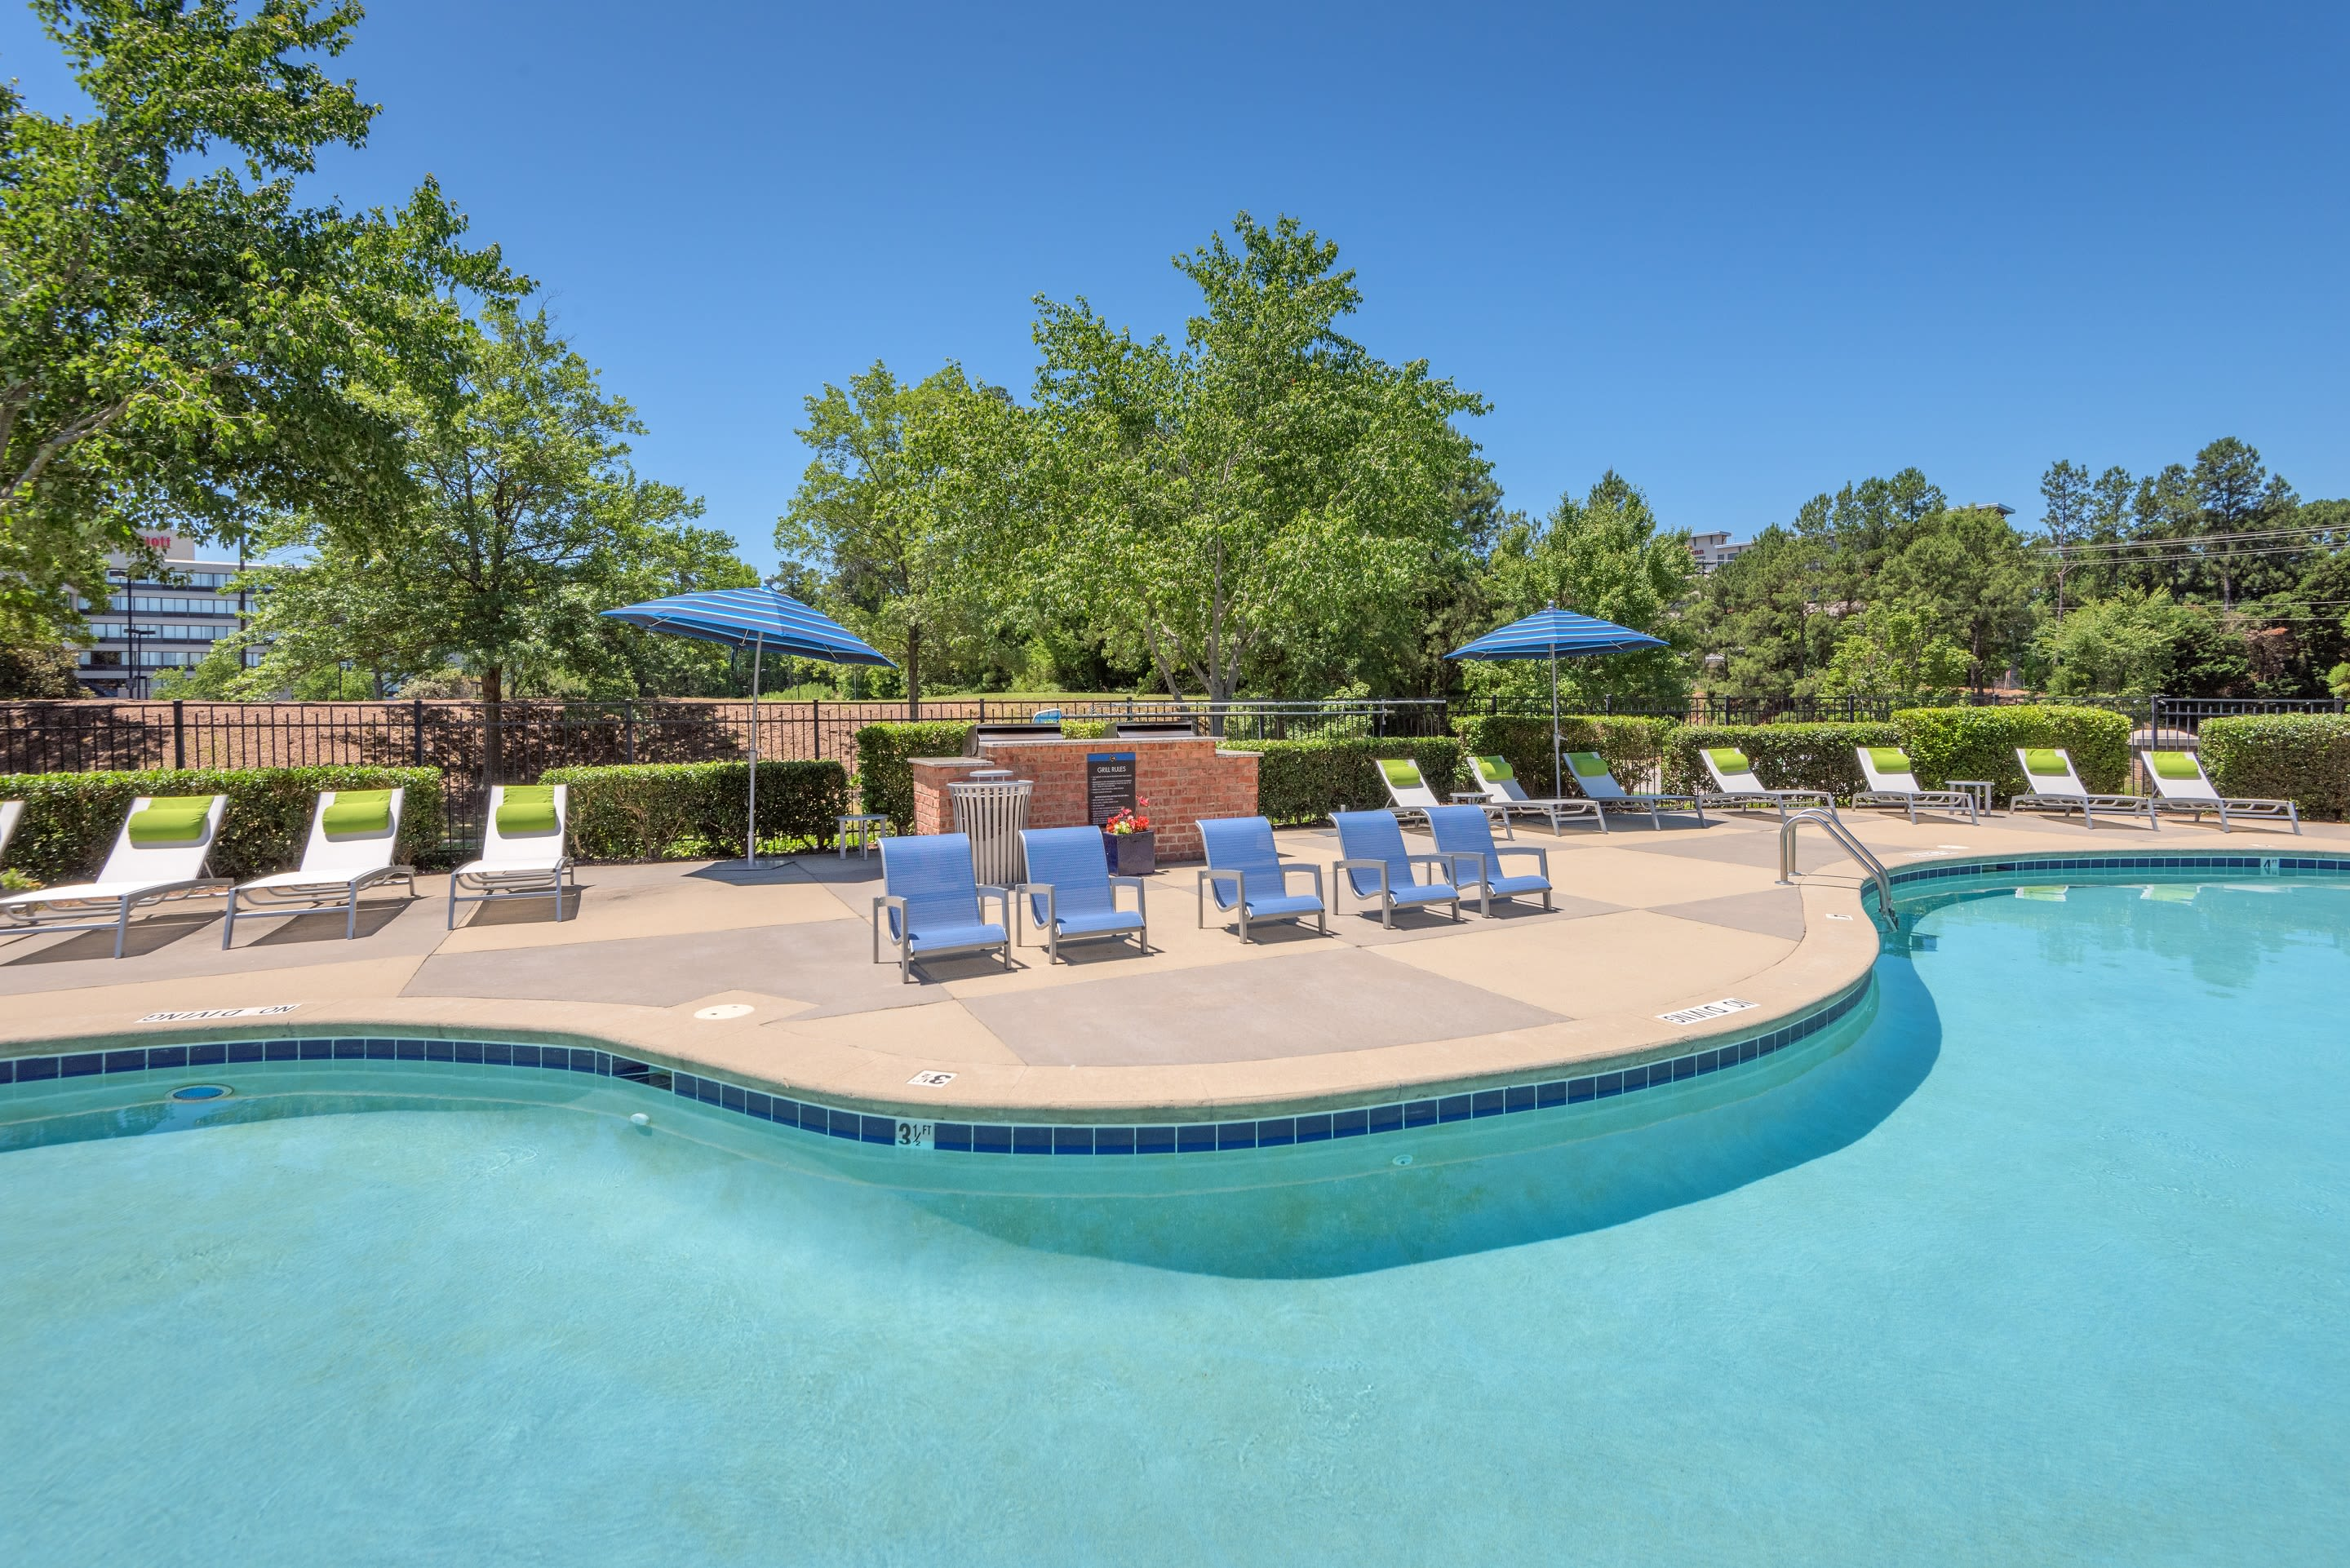 Resort-style swimming pool with plenty of chaise lounge chairs nearby at 200 East in Durham, North Carolina